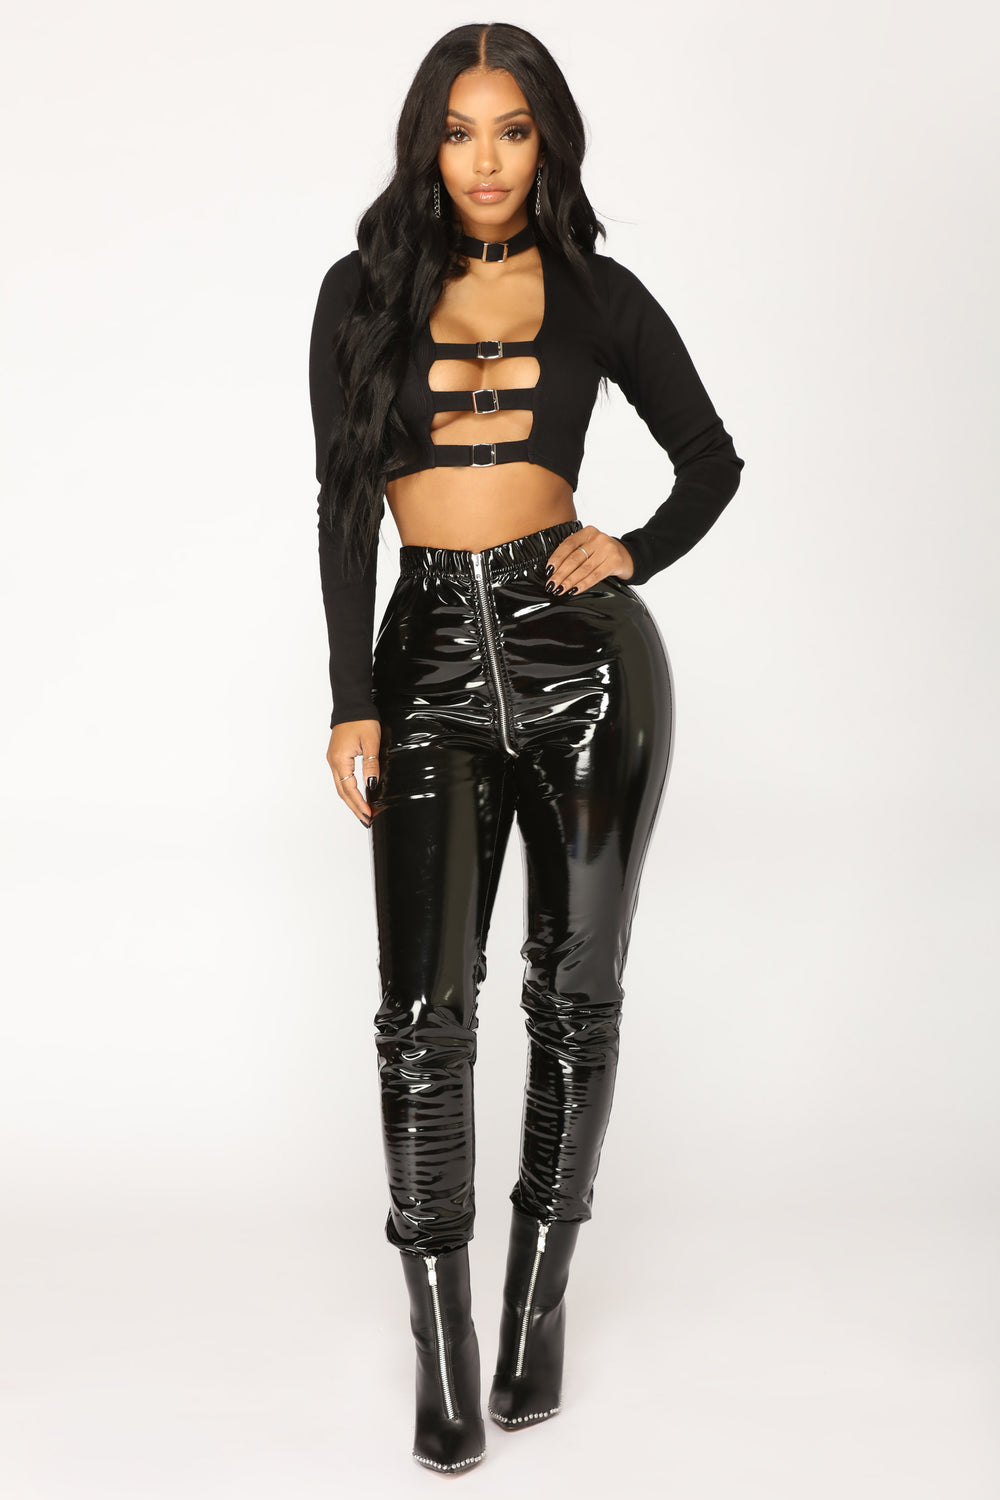 Buckle Up Crop Top - Black